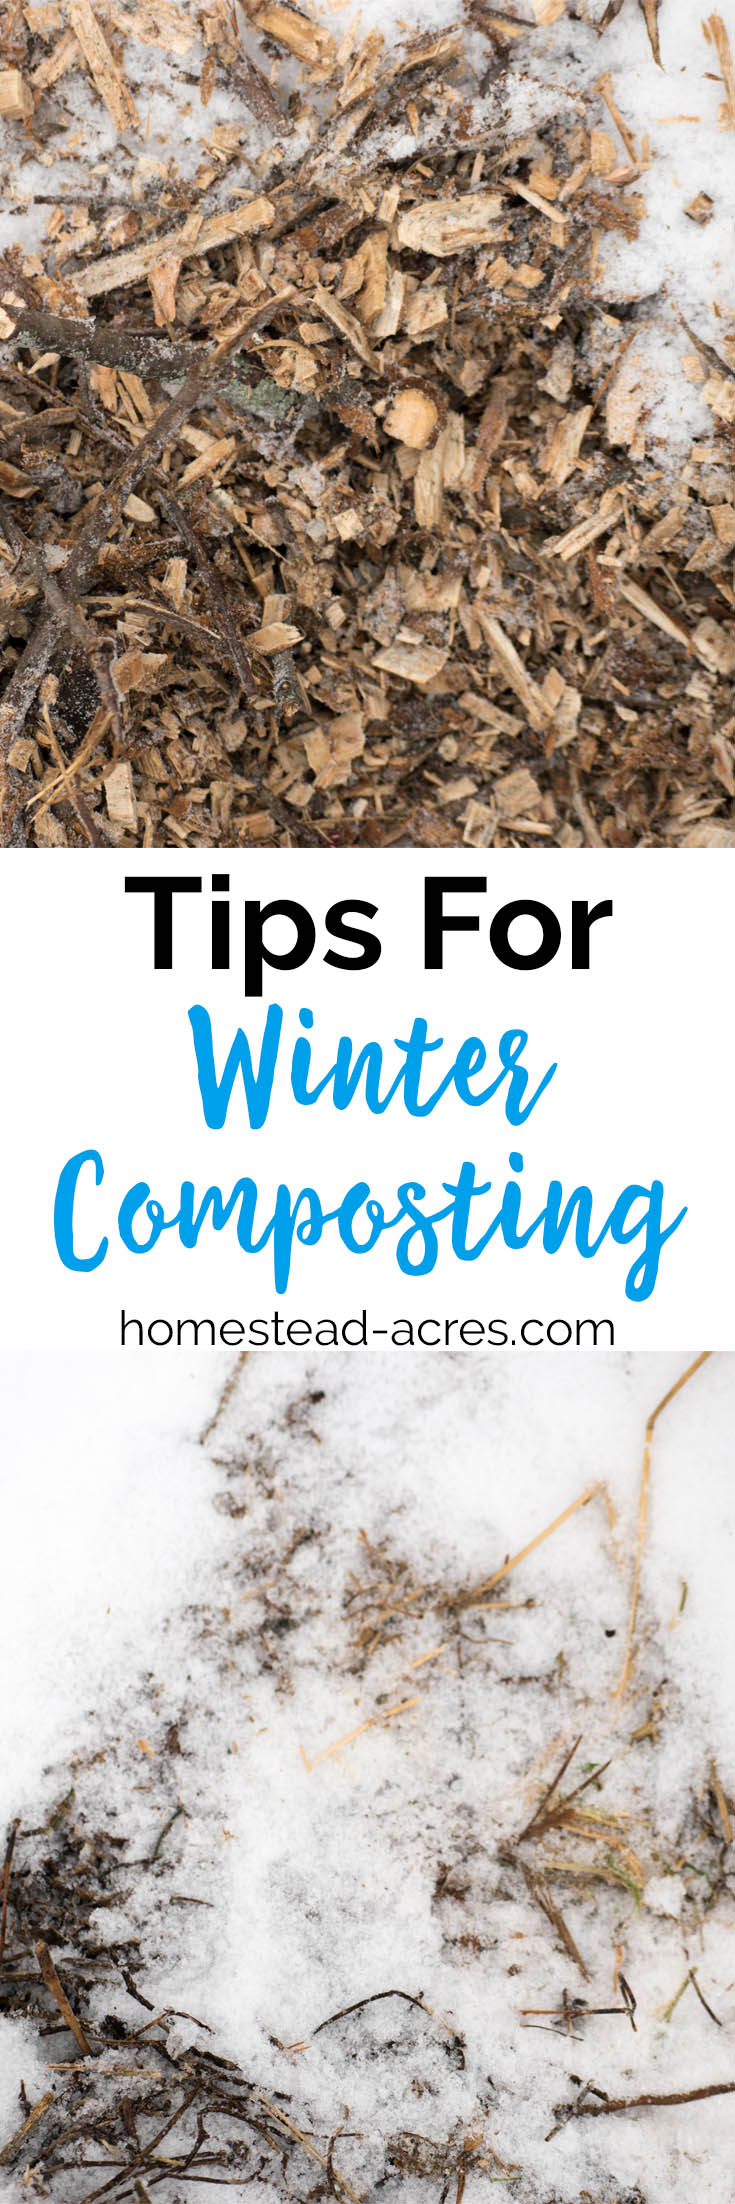 Winter composting tips for beginners. Learn how to make compost even in cold weather so you have nutrient rich fertilizer for your spring garden. #gardening #composting #homesteading